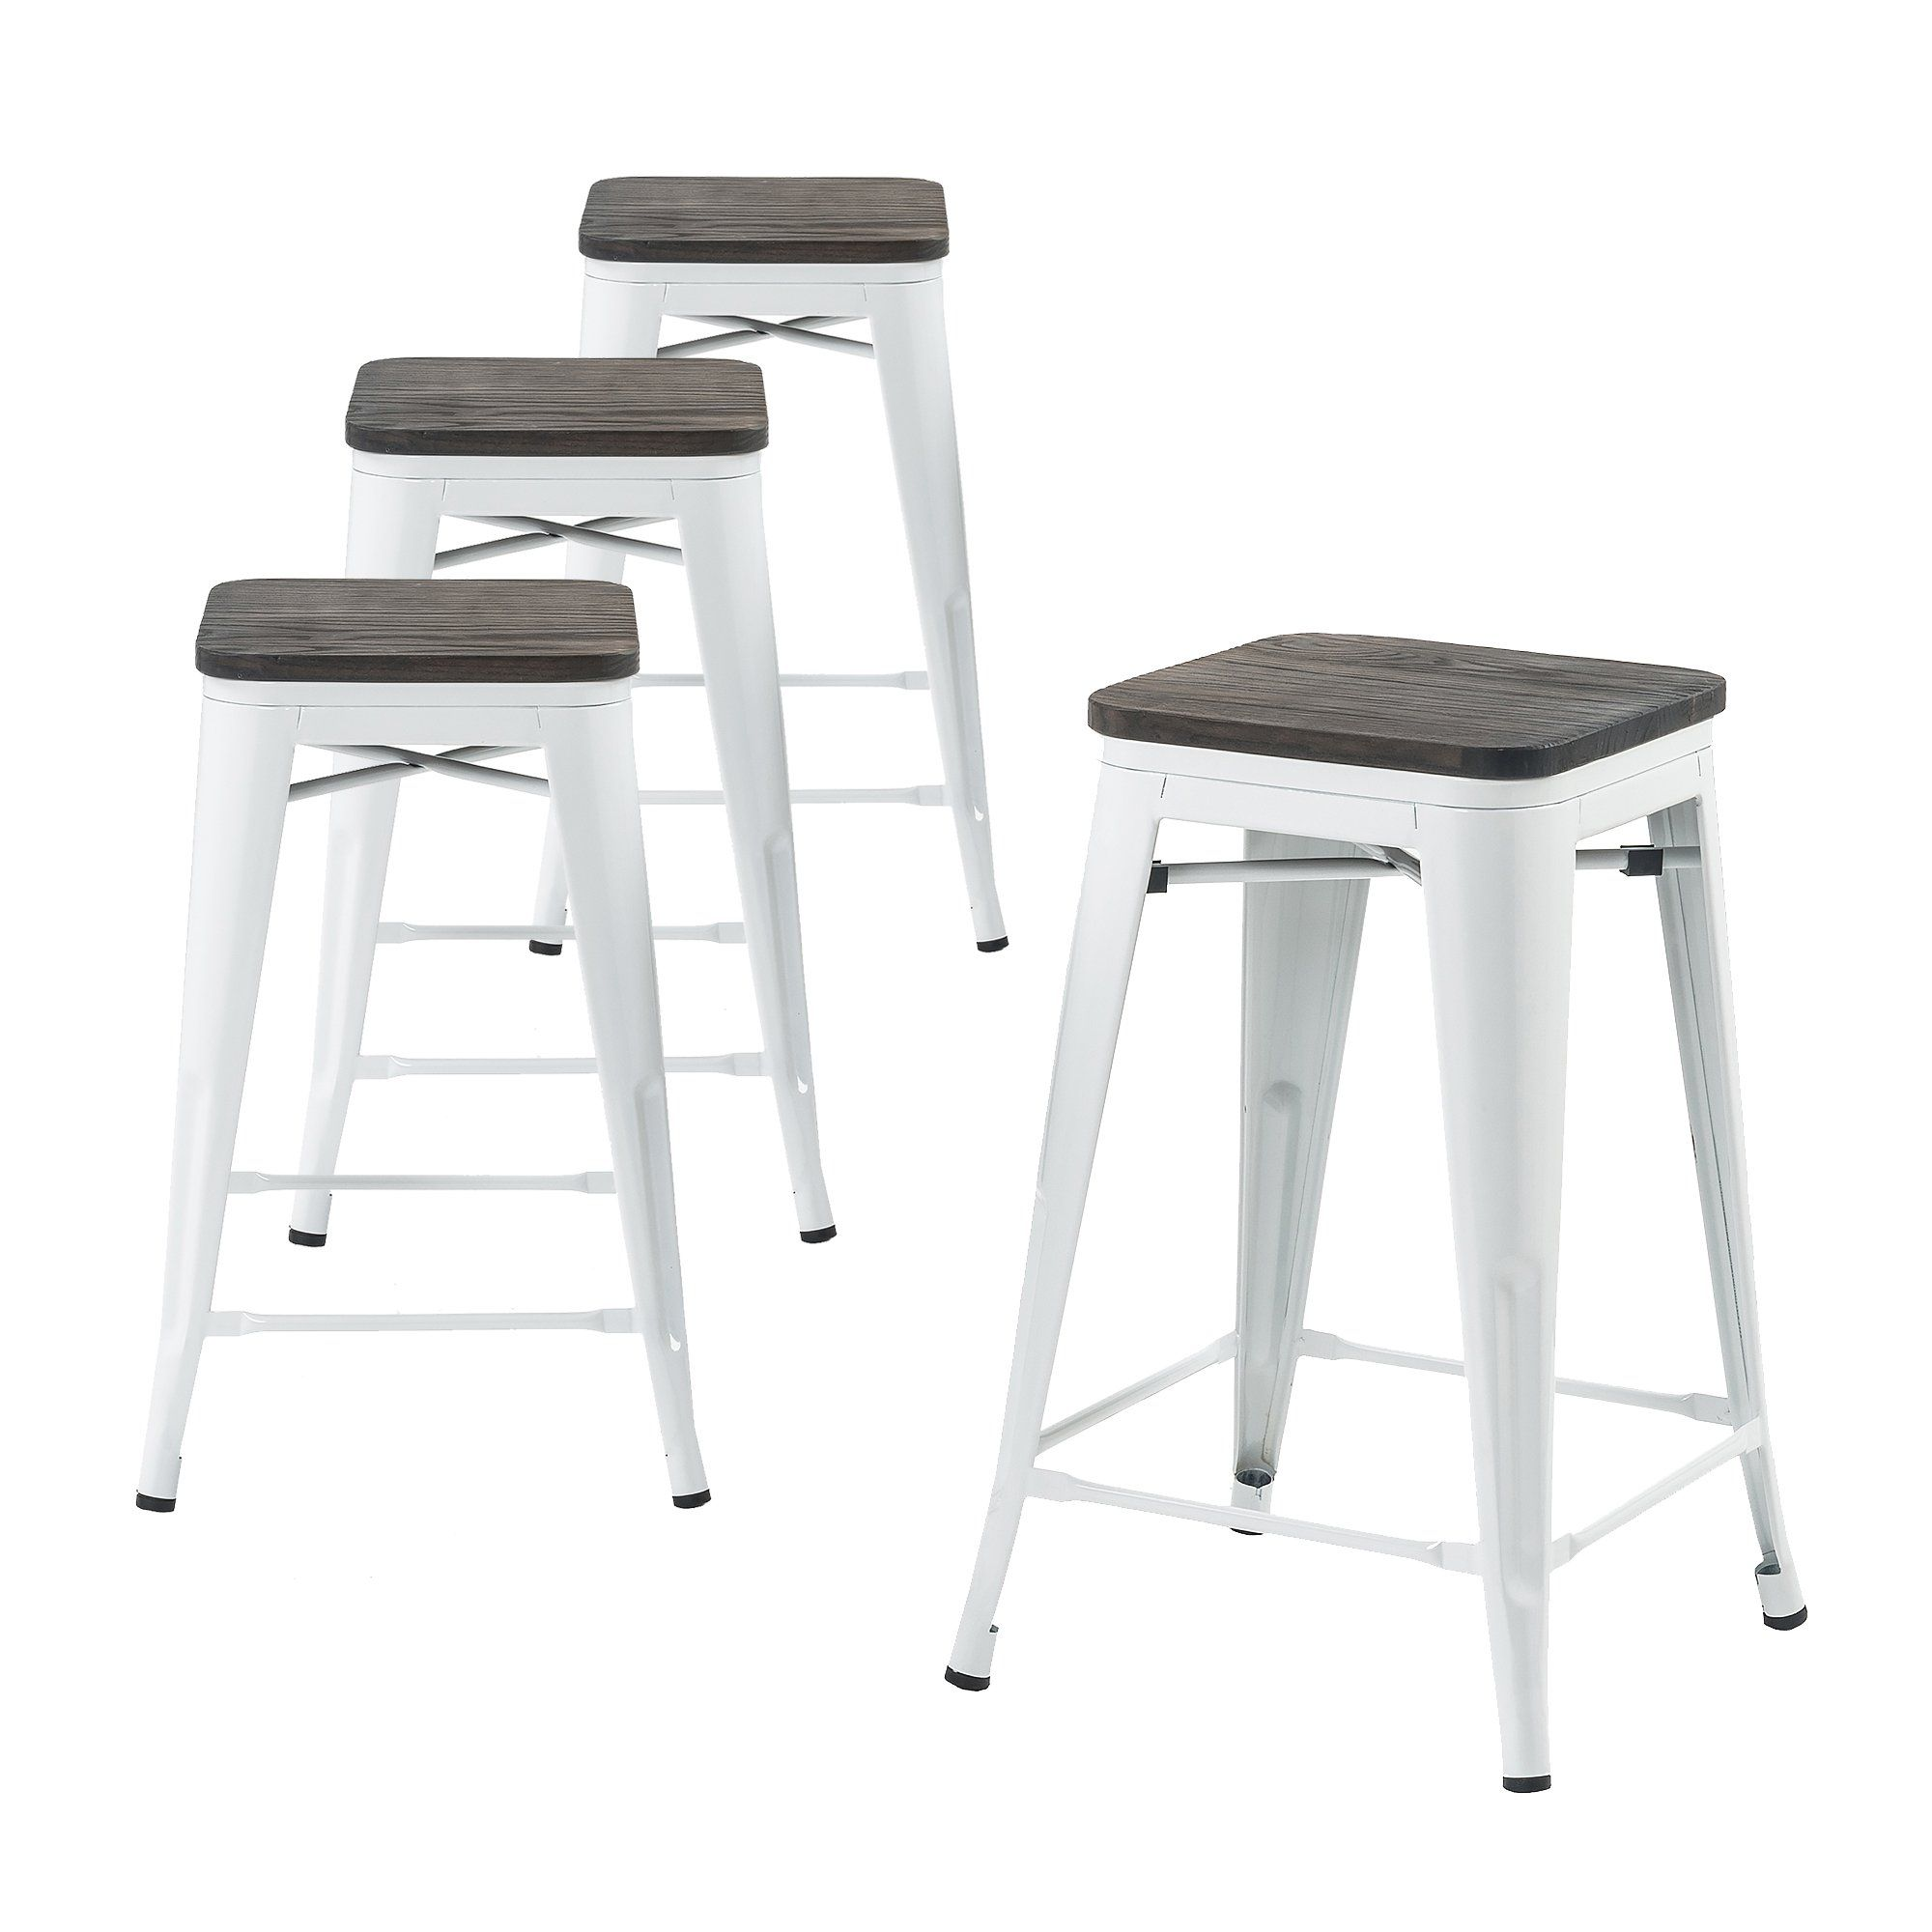 Buschman Set Of Four White Wooden Seat 24 Inches Counter High Tolix